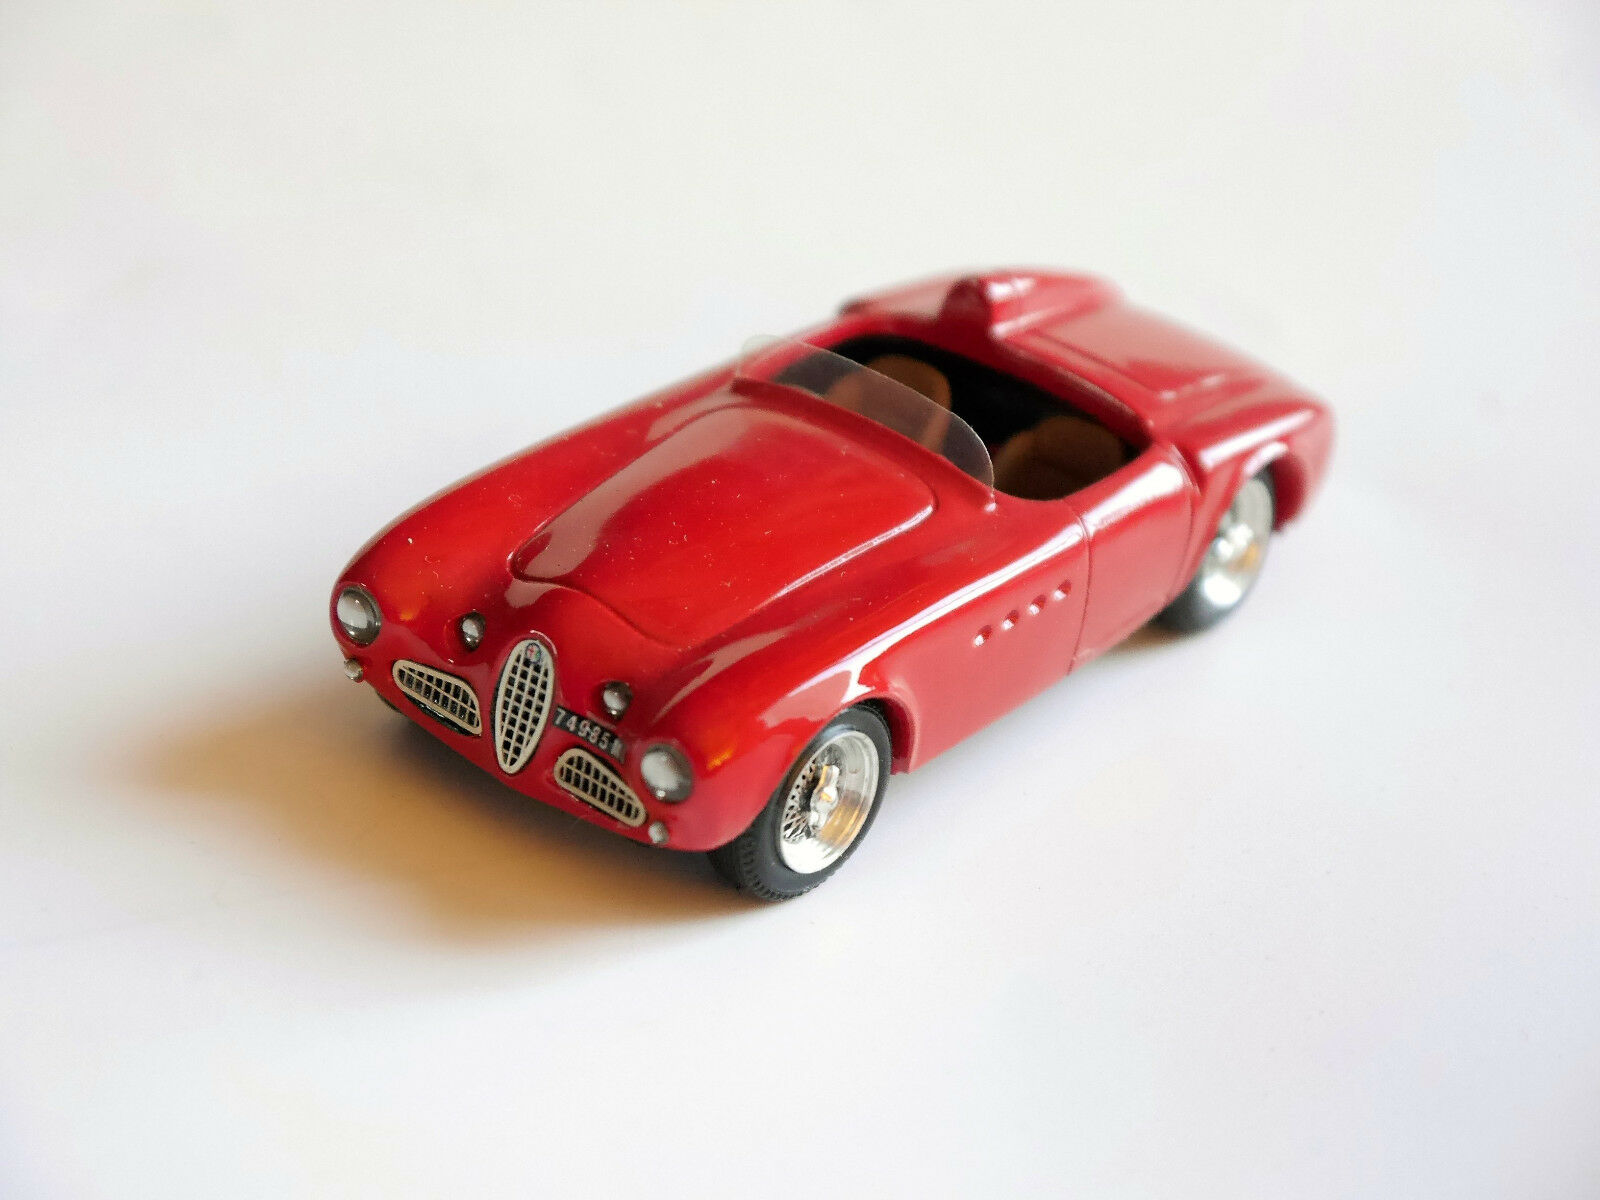 Alfa romeo vignale spyder rot - rot 412 rot, top - modell sammlung 1 43